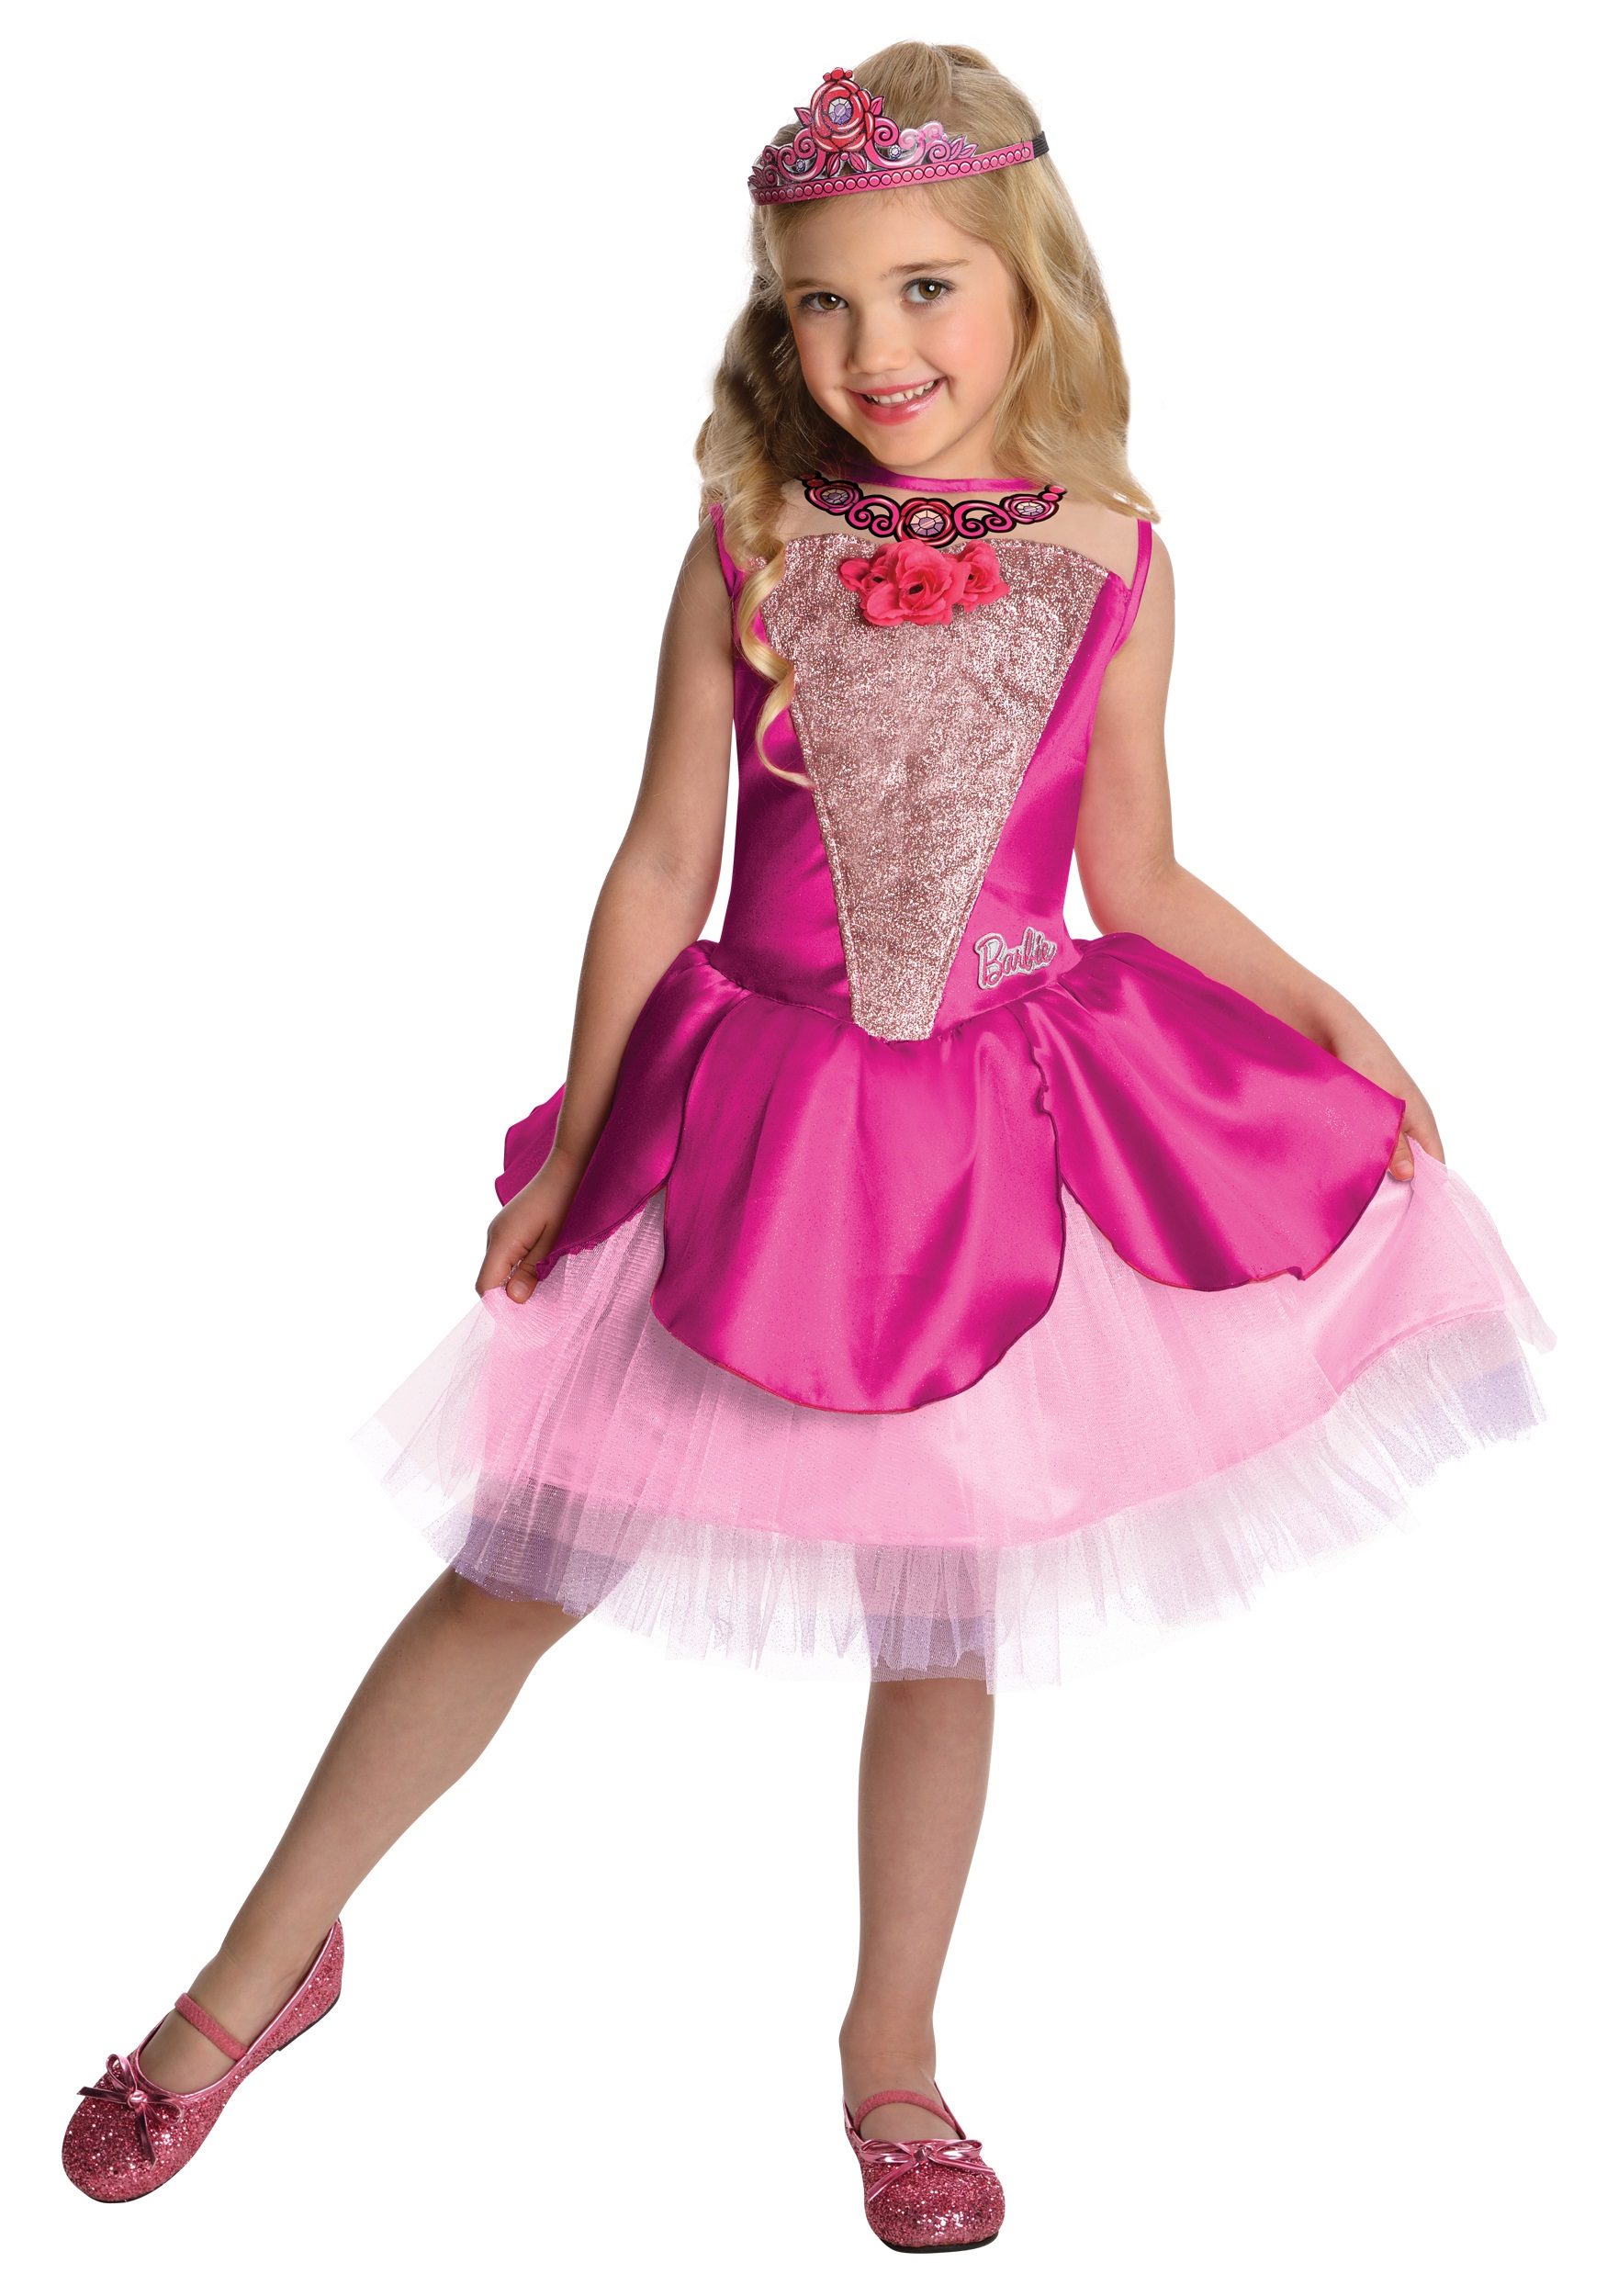 Girls Deluxe Kristyn Barbie Costume  sc 1 st  Halloween Costumes & Girls Deluxe Kristyn Barbie Costume - Halloween Costumes